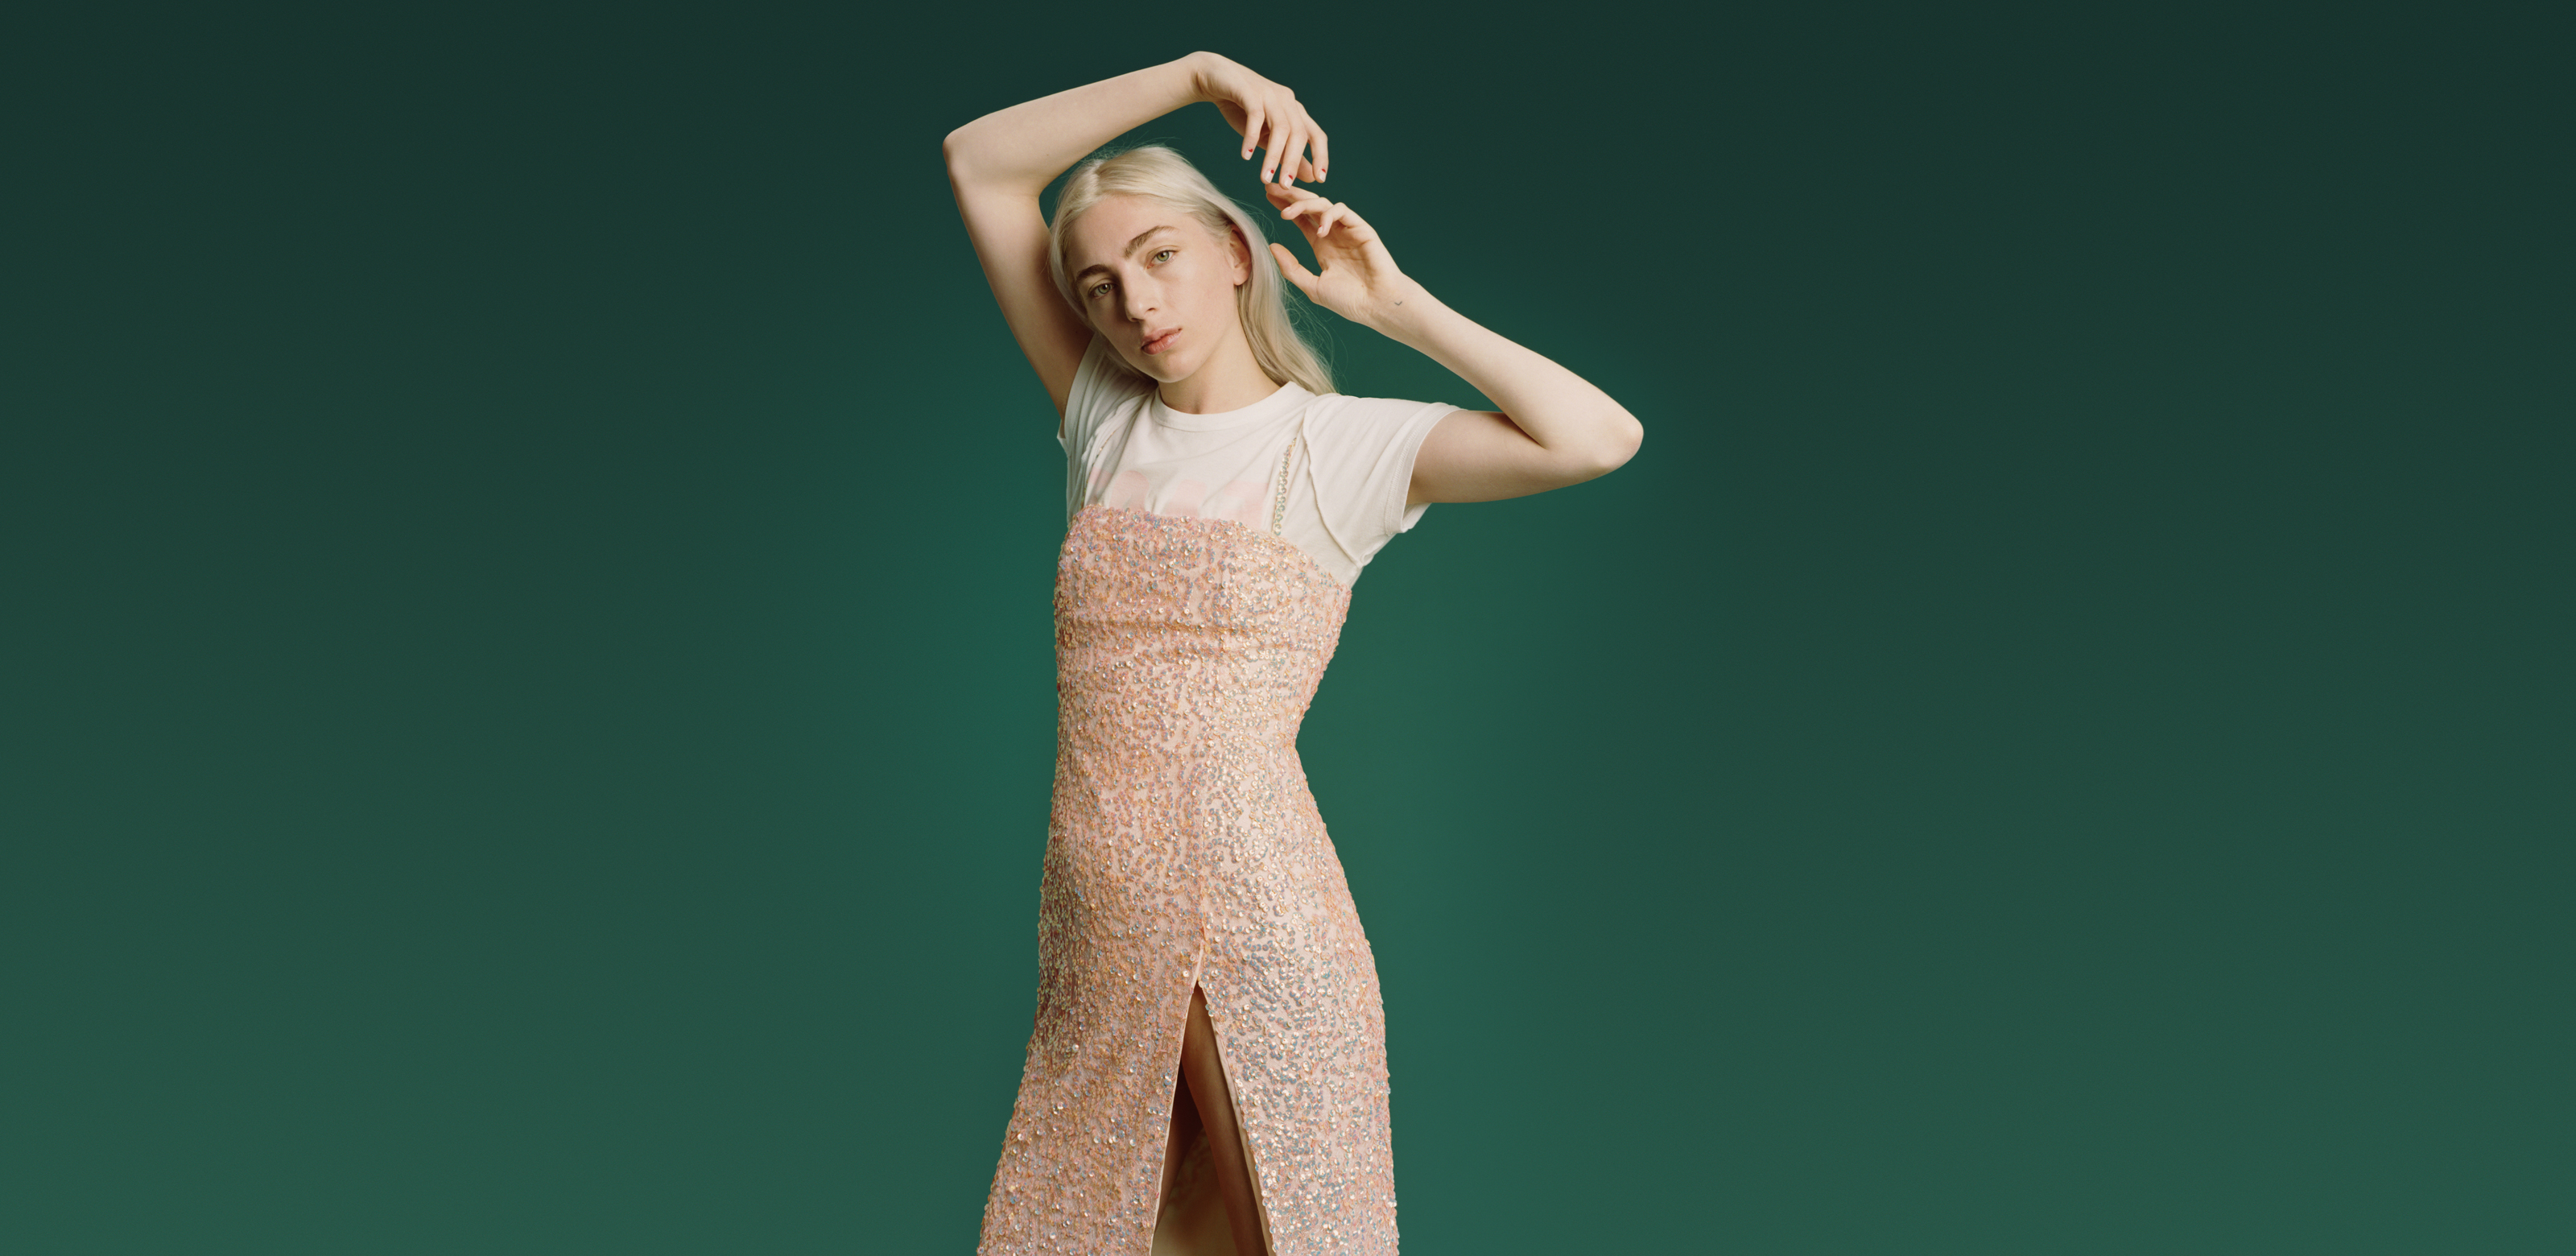 dress code-  Castaway Lace Dress